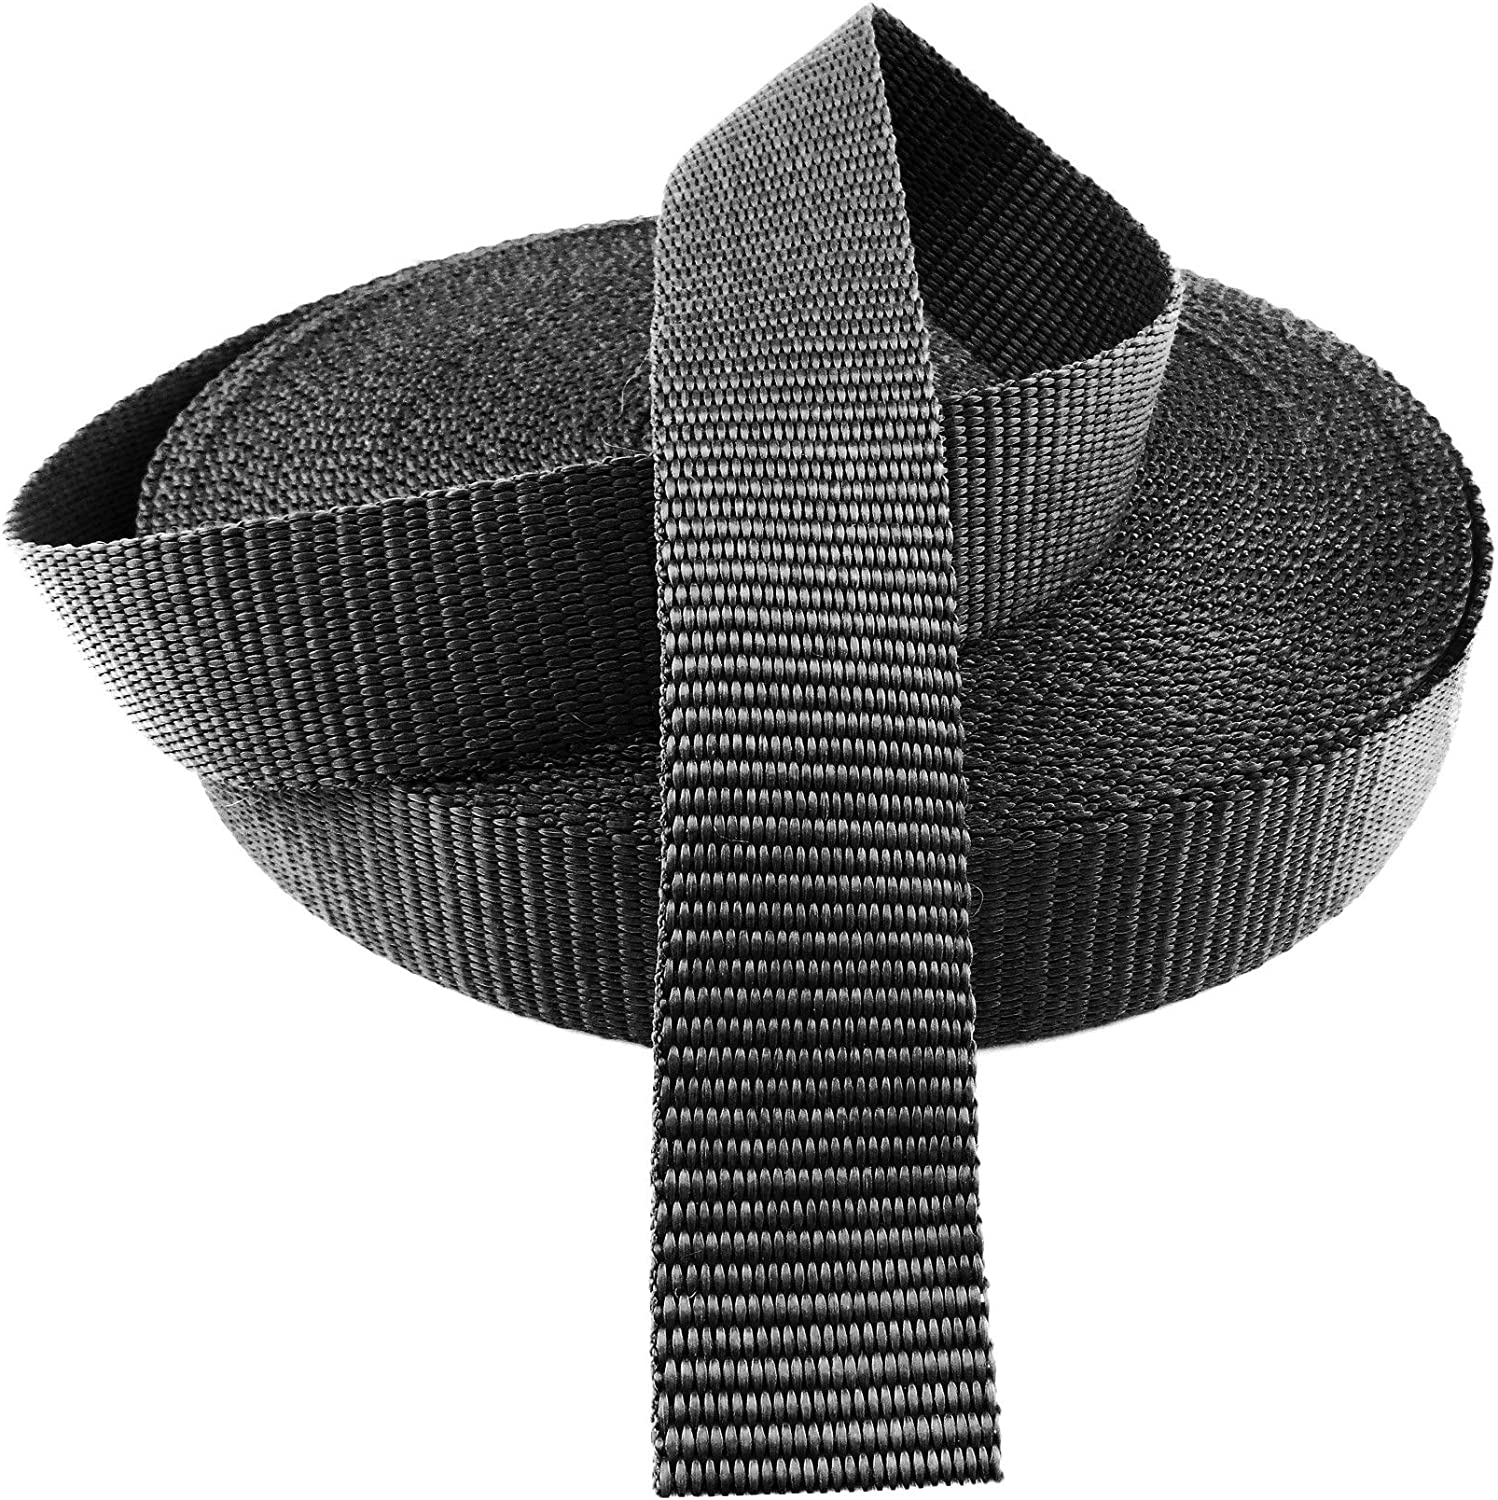 Polypropylene Webbing Nylon Strapping Bags Straps Weave 10 15 20 25 30 40 50 mm Green Grizzly 10 m 10 mm - B3M, Black